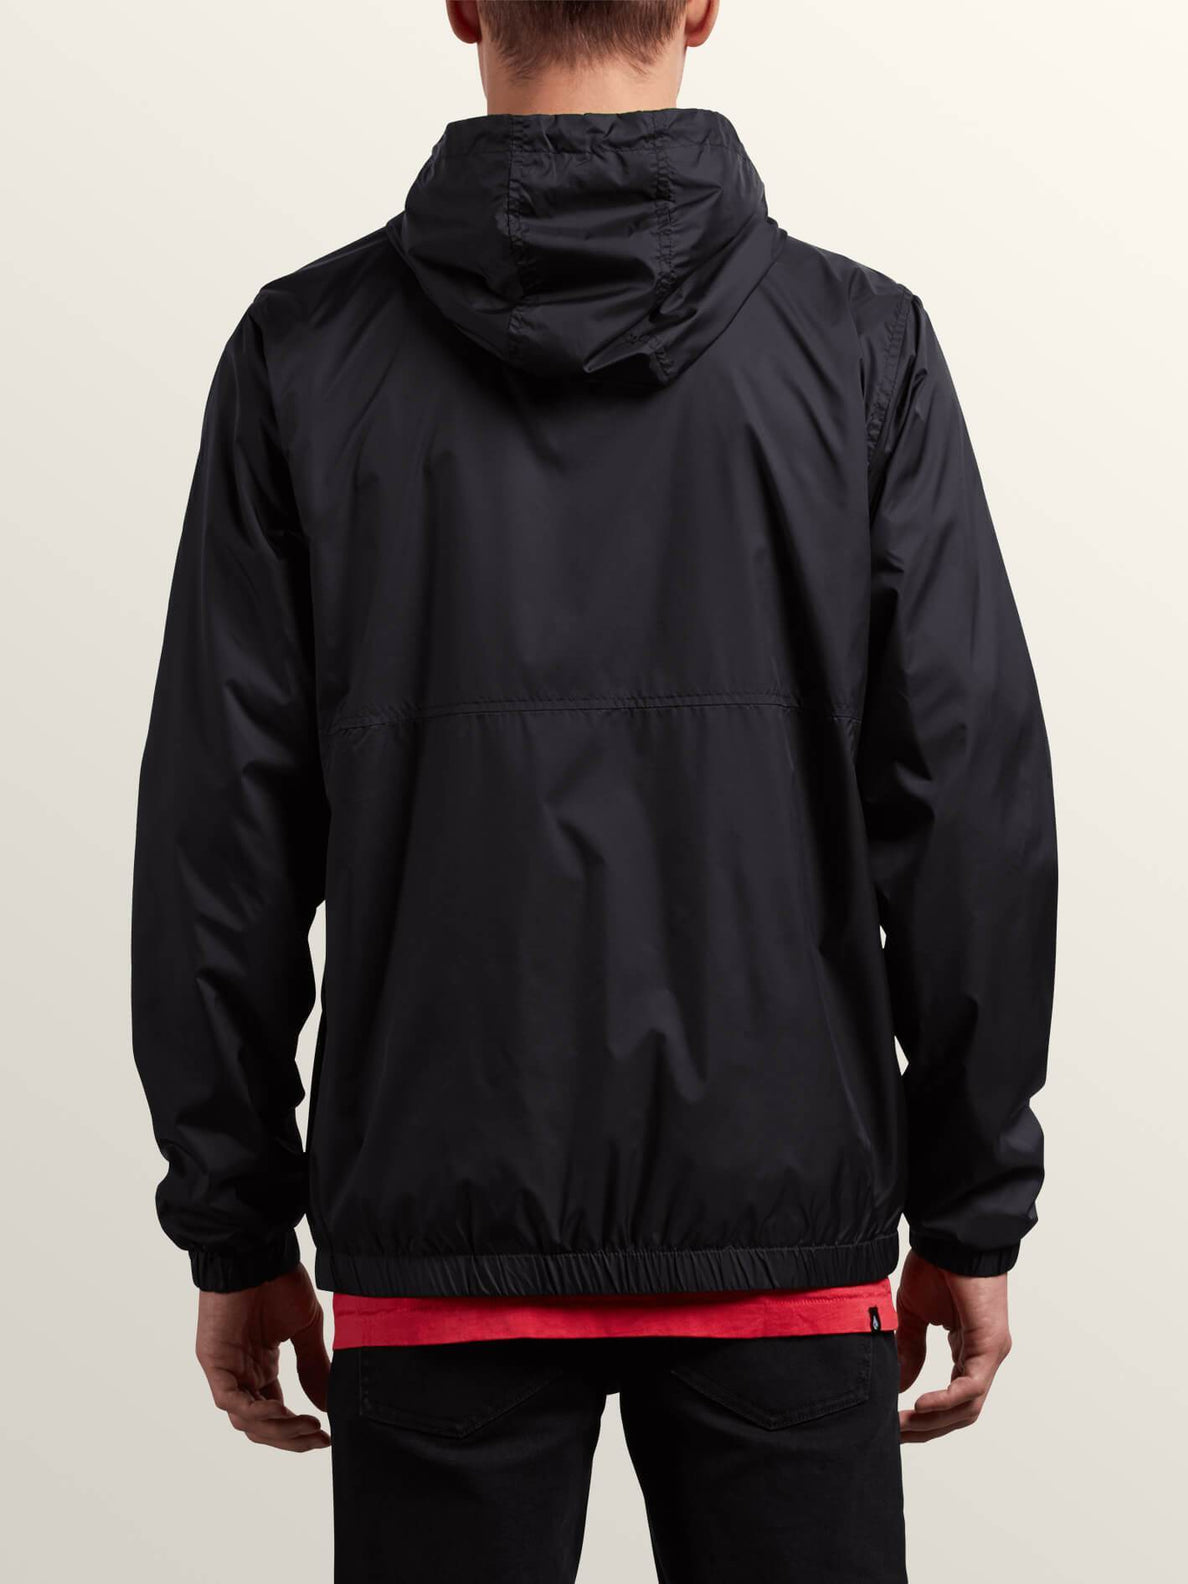 Ermont Jacket - Black